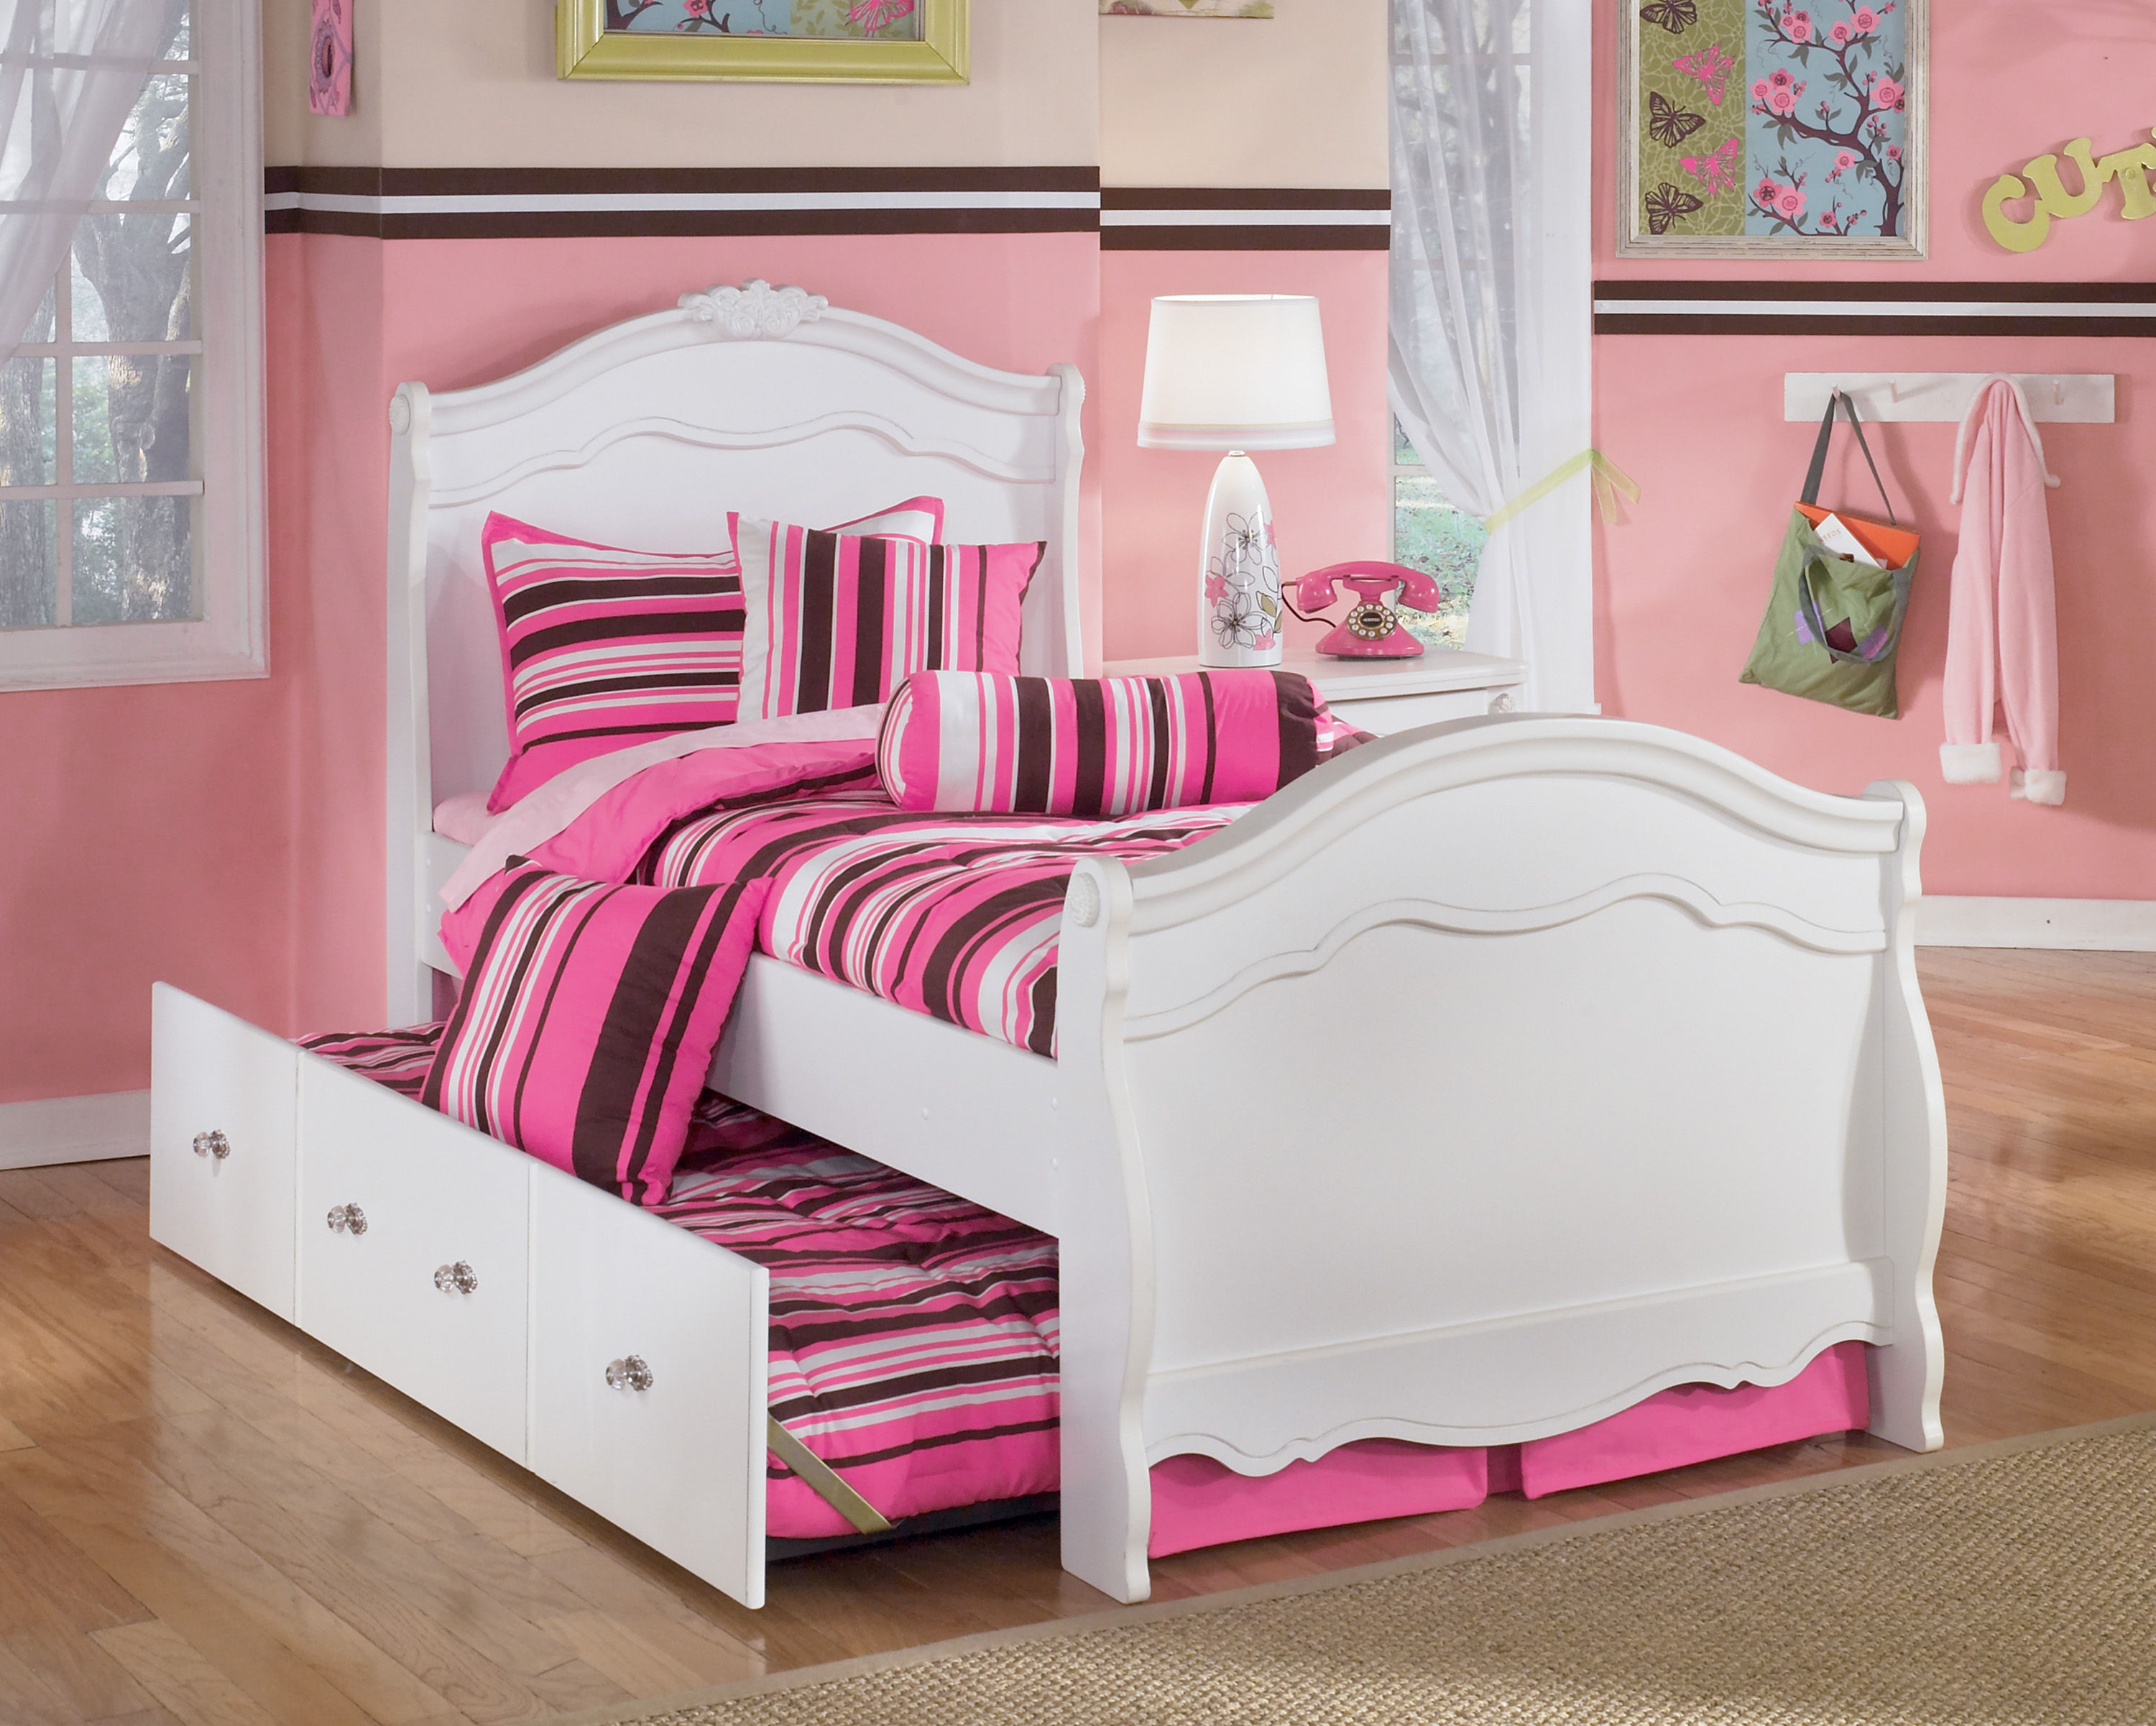 Ashley Furniture Exquisite Luminous White Twin Trundle Bed | The